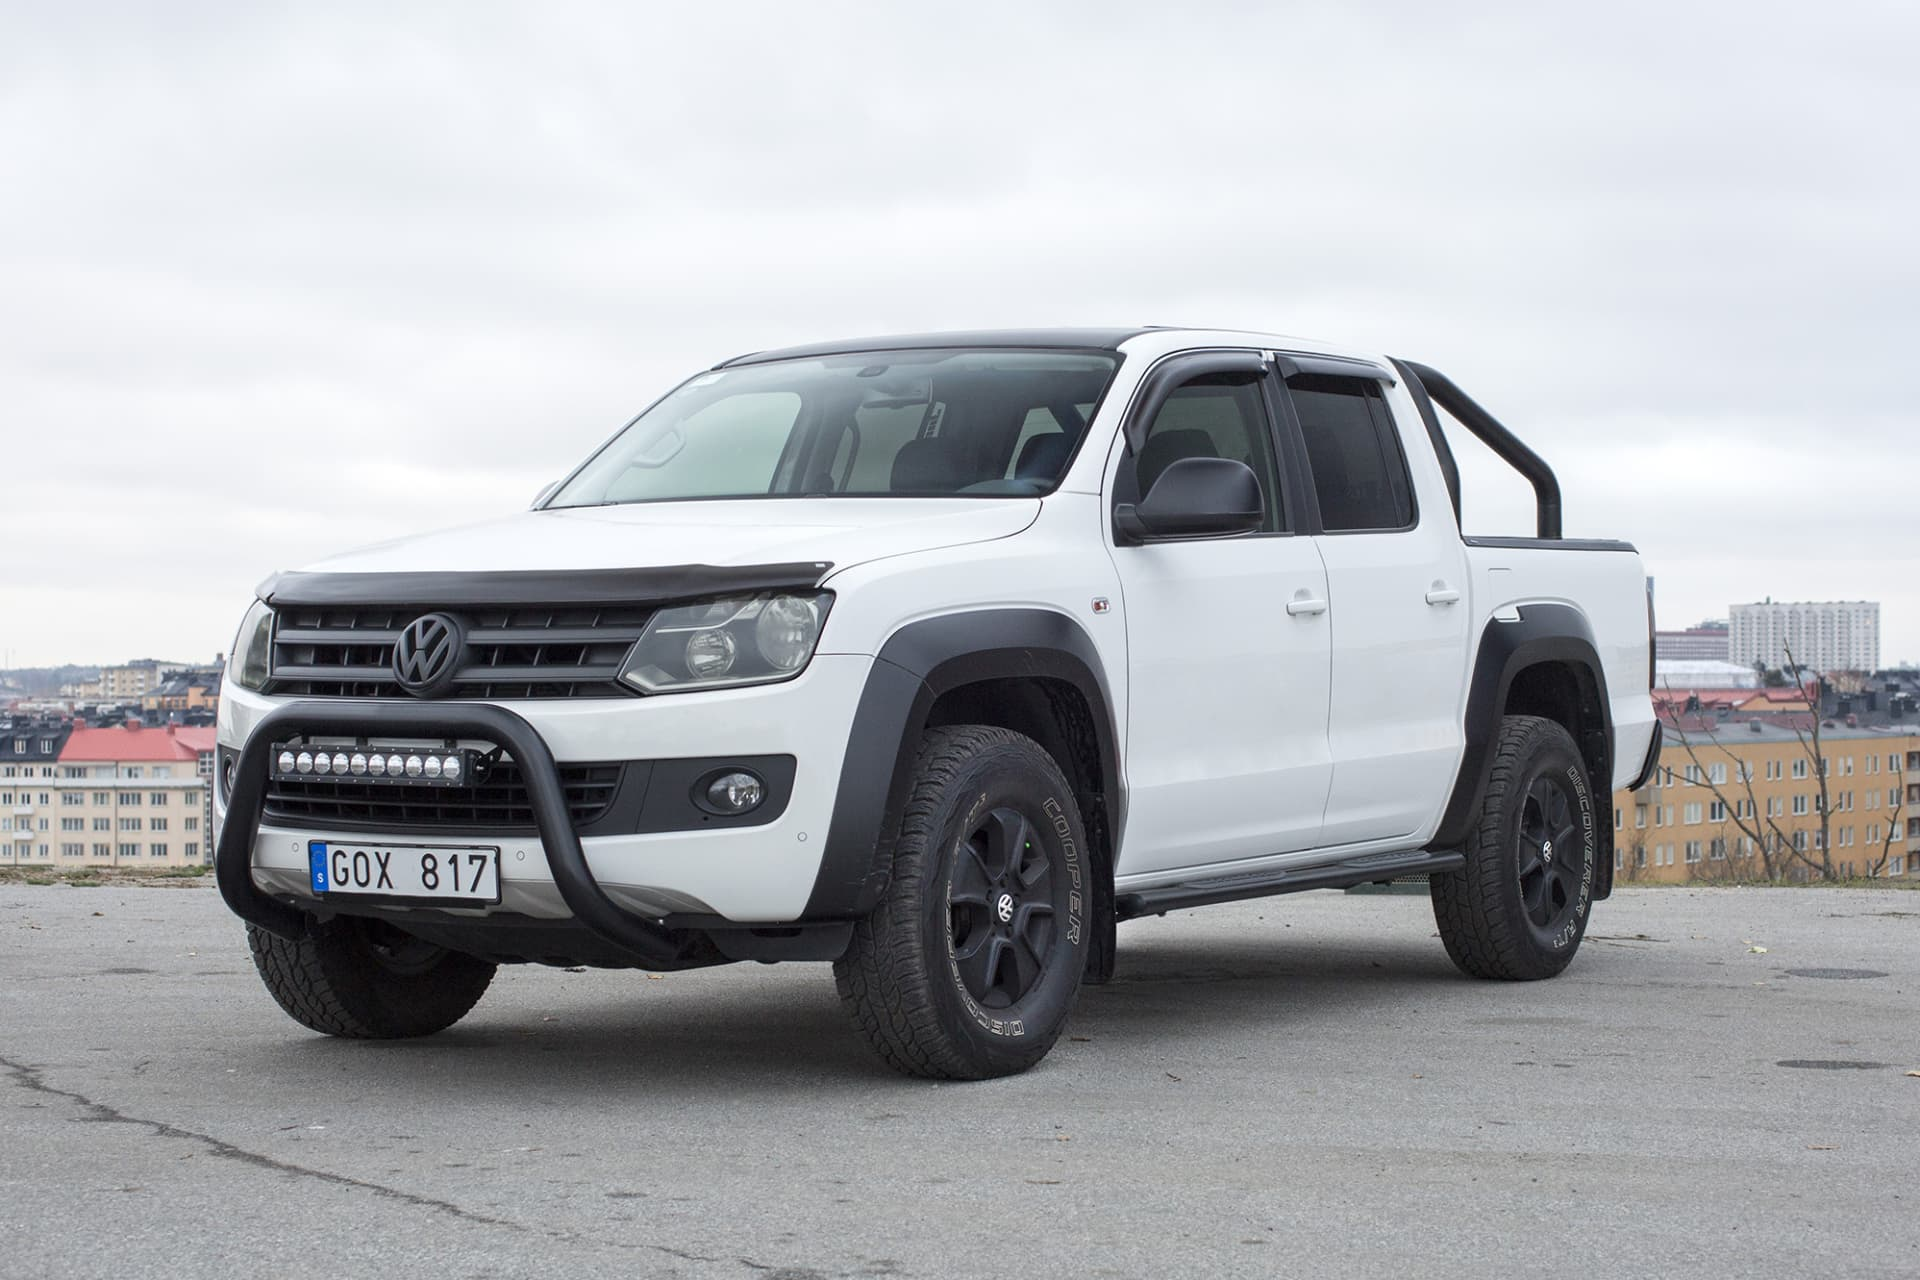 My first Volkswagen Amarok. Pretty much standard with the exception of the bullbar with LED, wind needles for the hood and the windows and slightly wider tires. The fender skirts, the roof and the chrome parts were wrapped matte black.